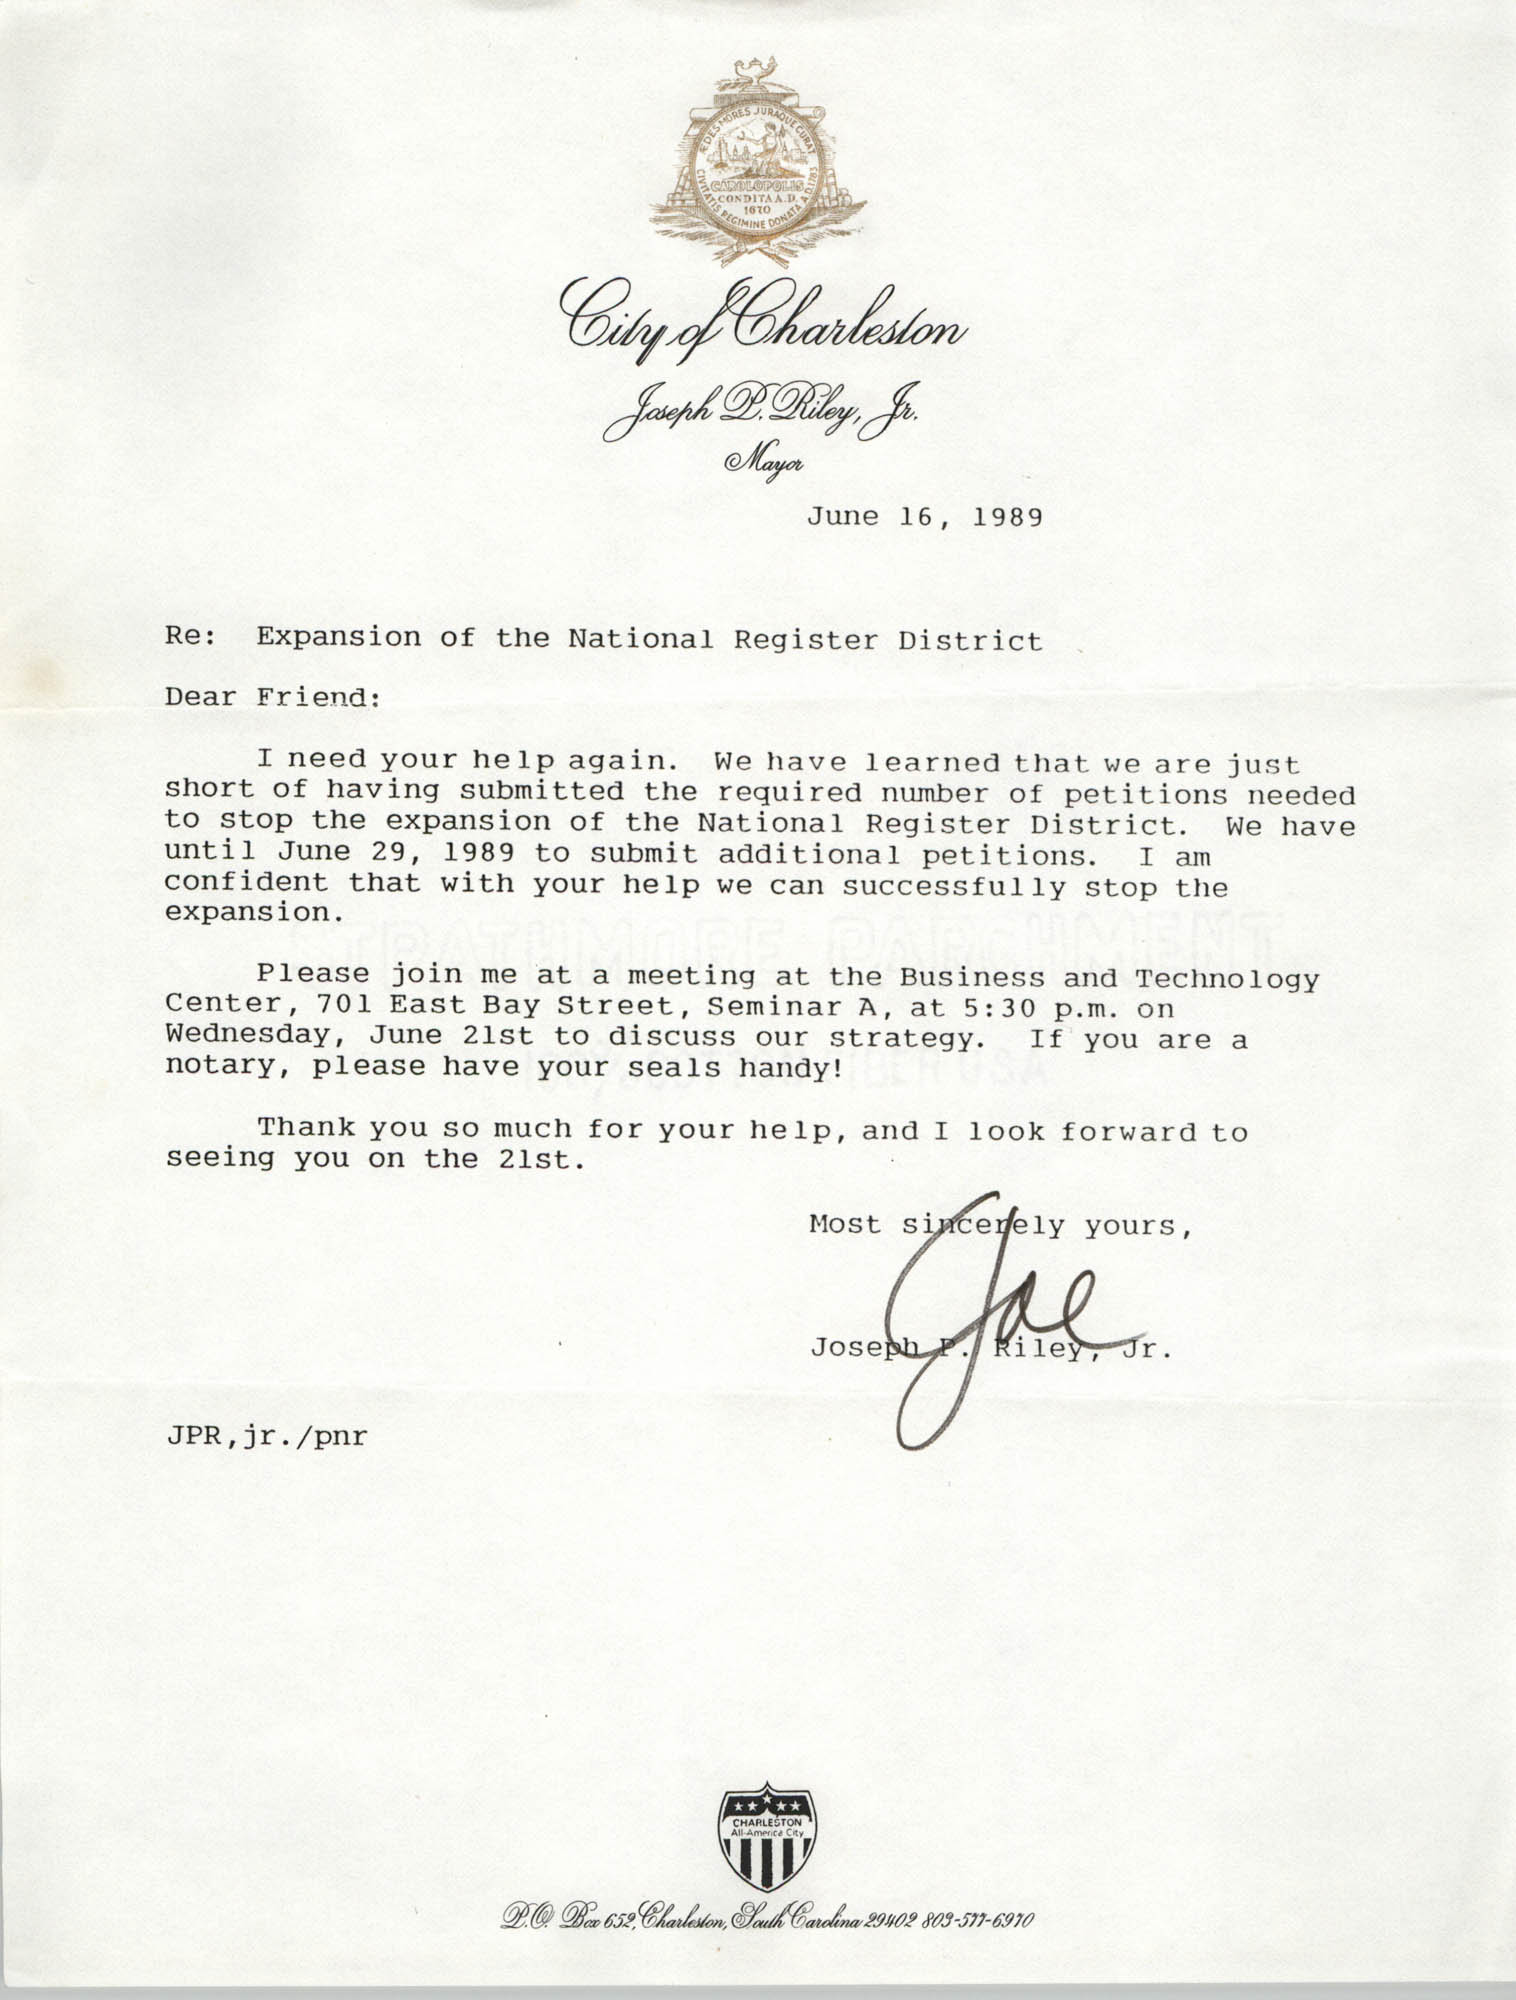 Letter from Joseph P. Riley to Bernice Robinson, June 16, 1989